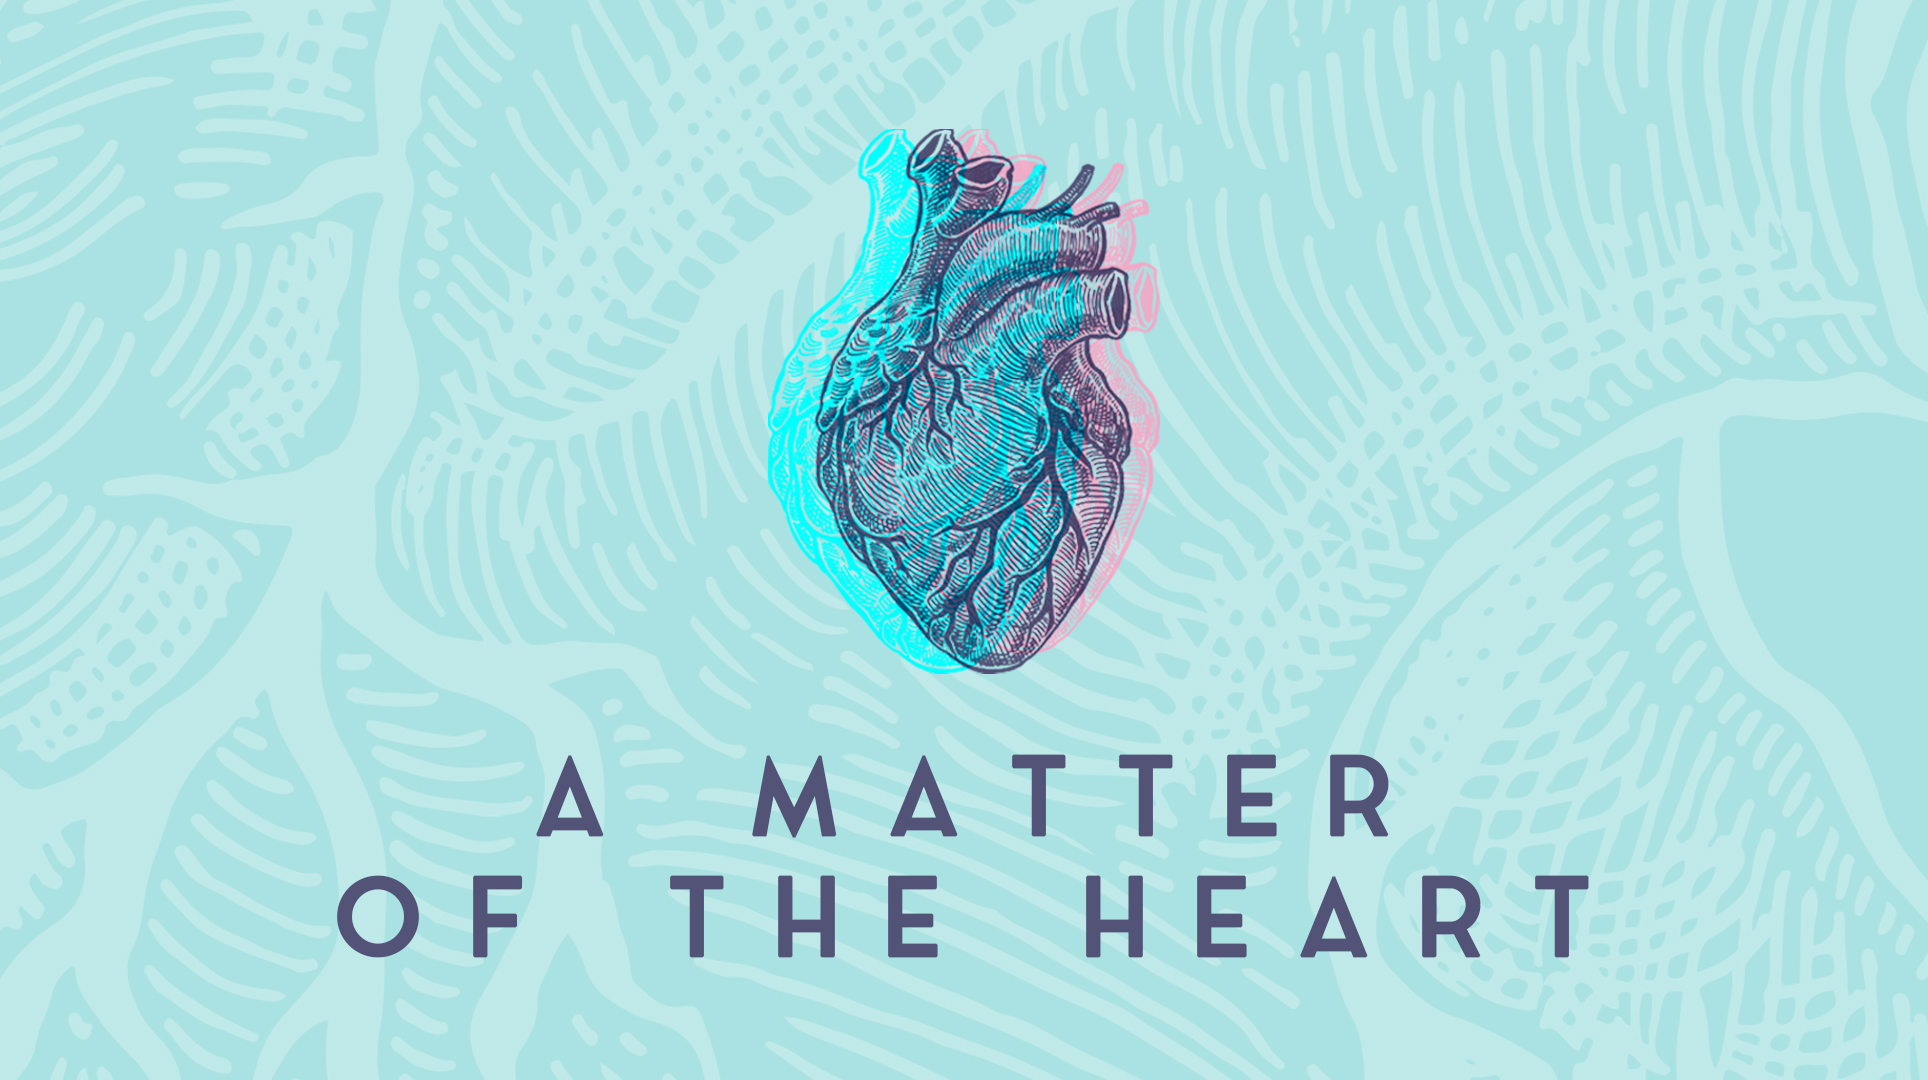 A Matter of the Heart.jpg